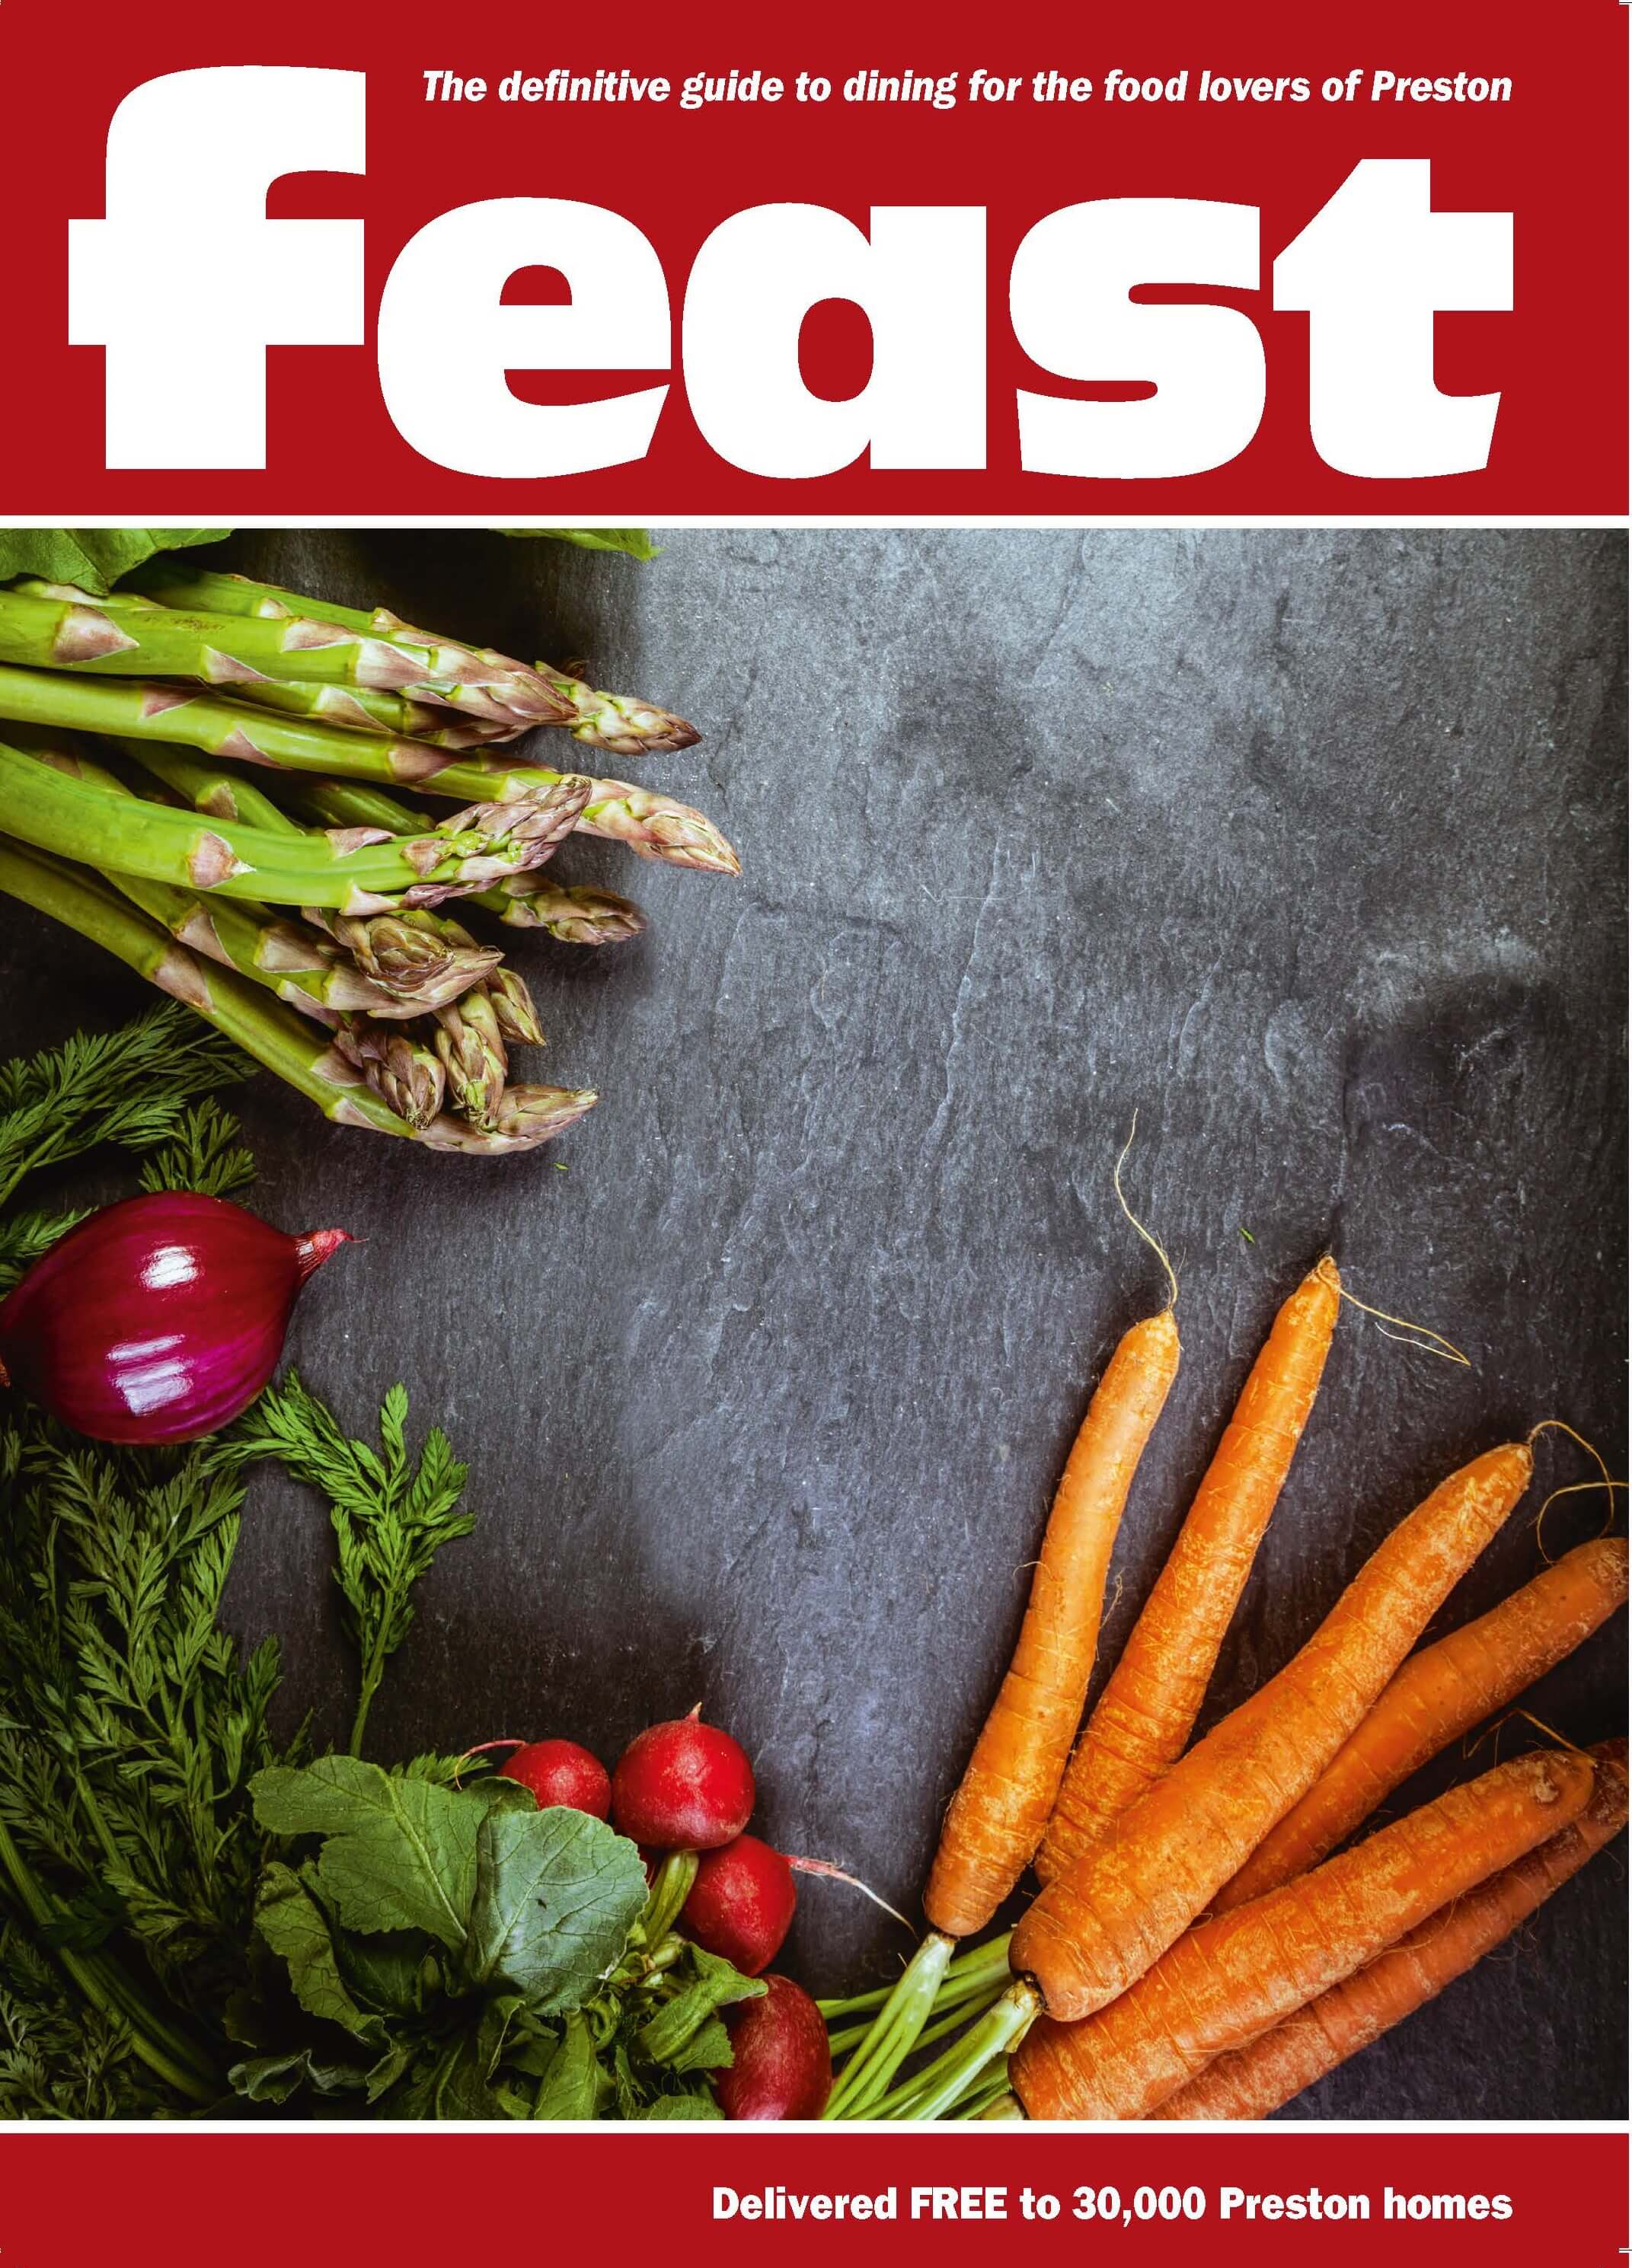 FEAST launching March 2019